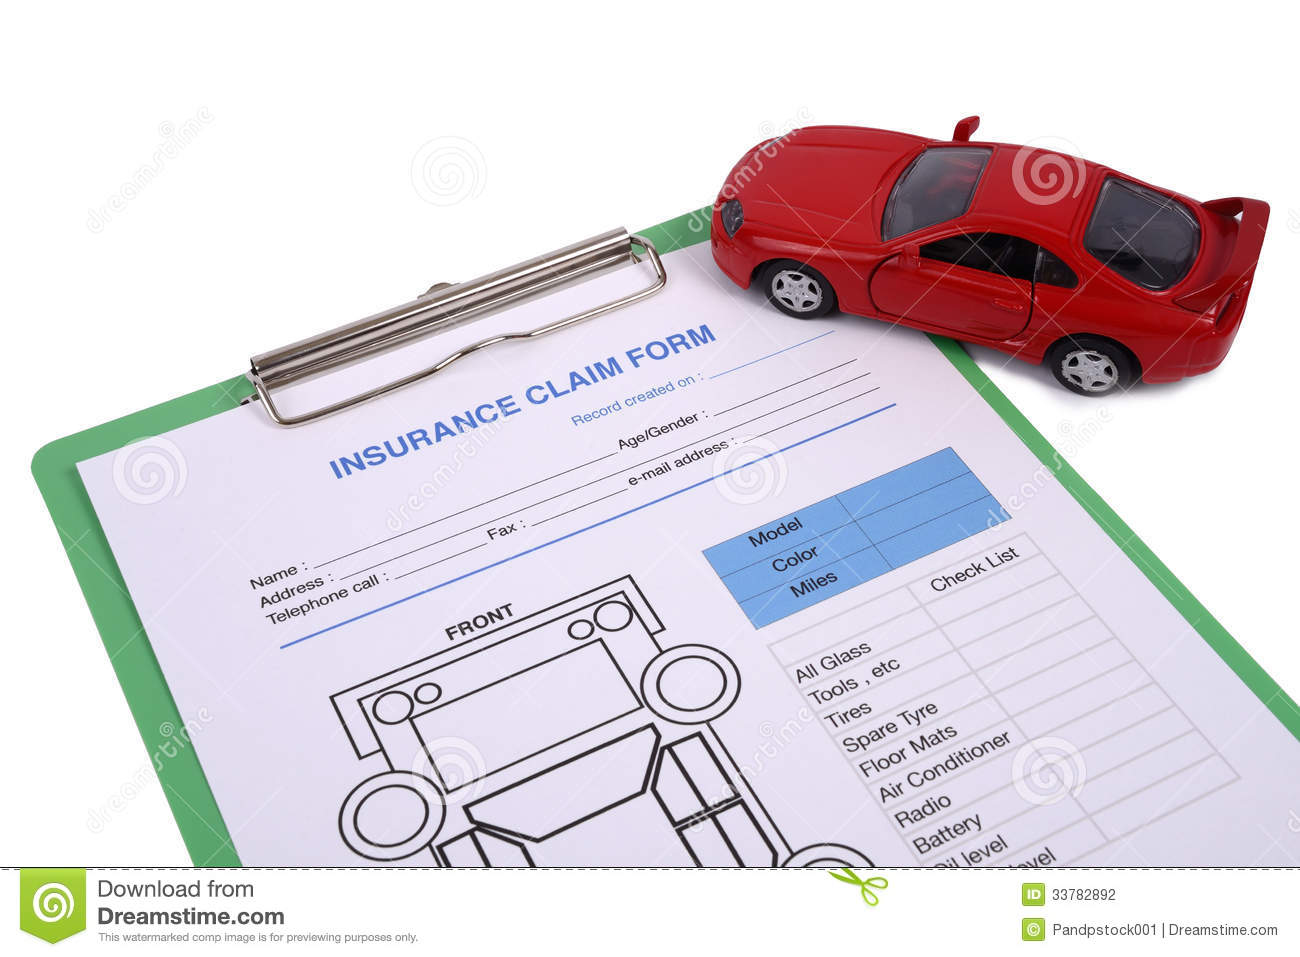 Insurance Claim Form Stock Photography  Image: 33782892